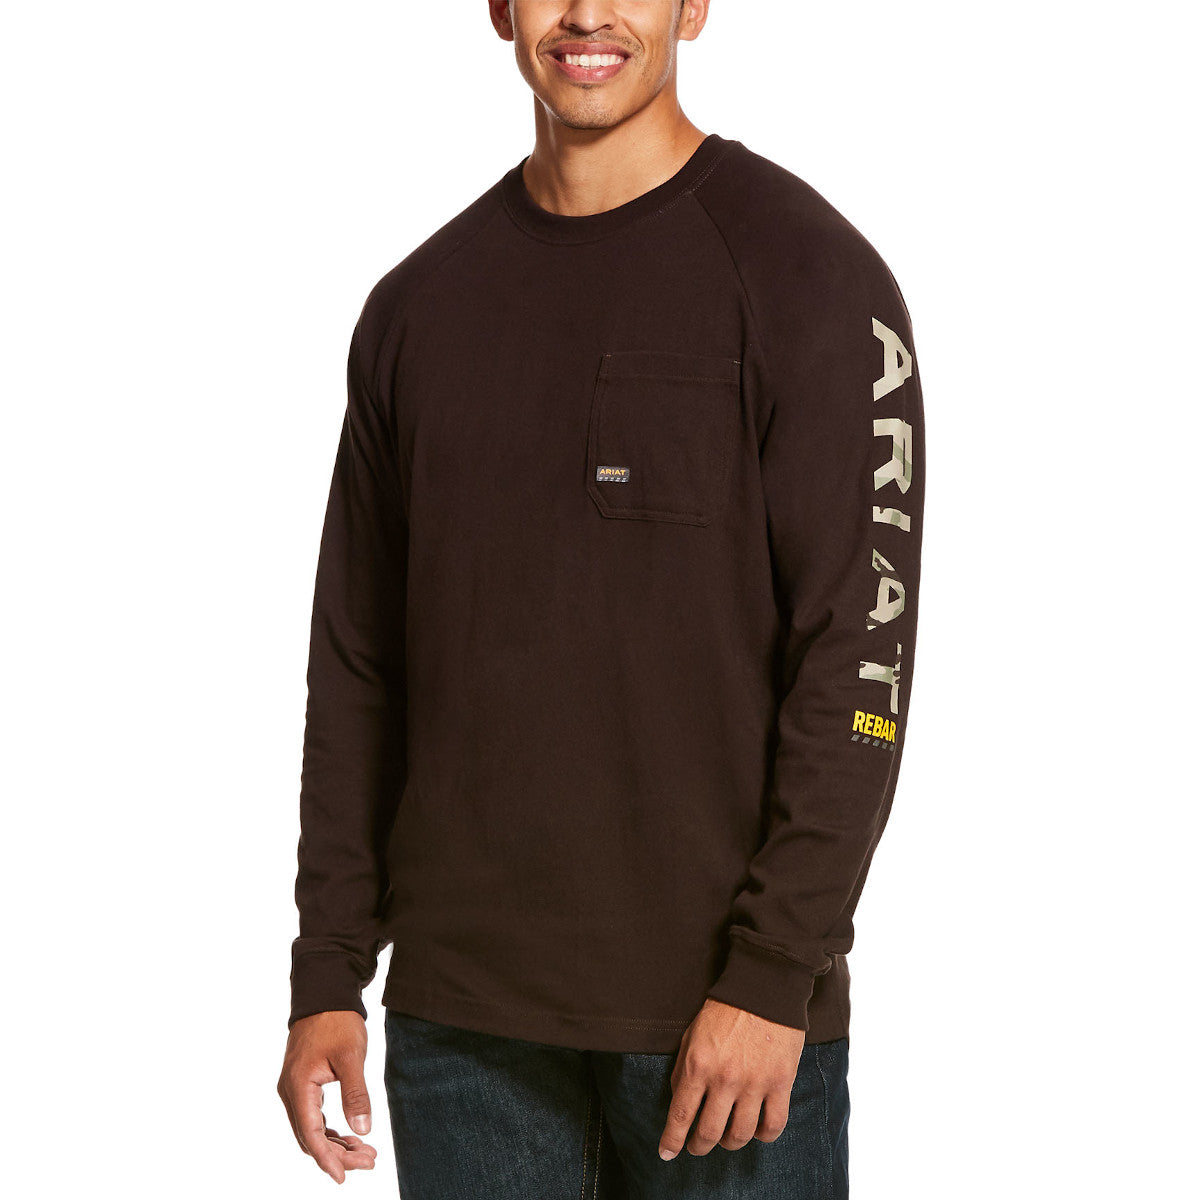 Ariat Men's Brown Rebar Cotton Strong Graphic Long Sleeve T-Shirt